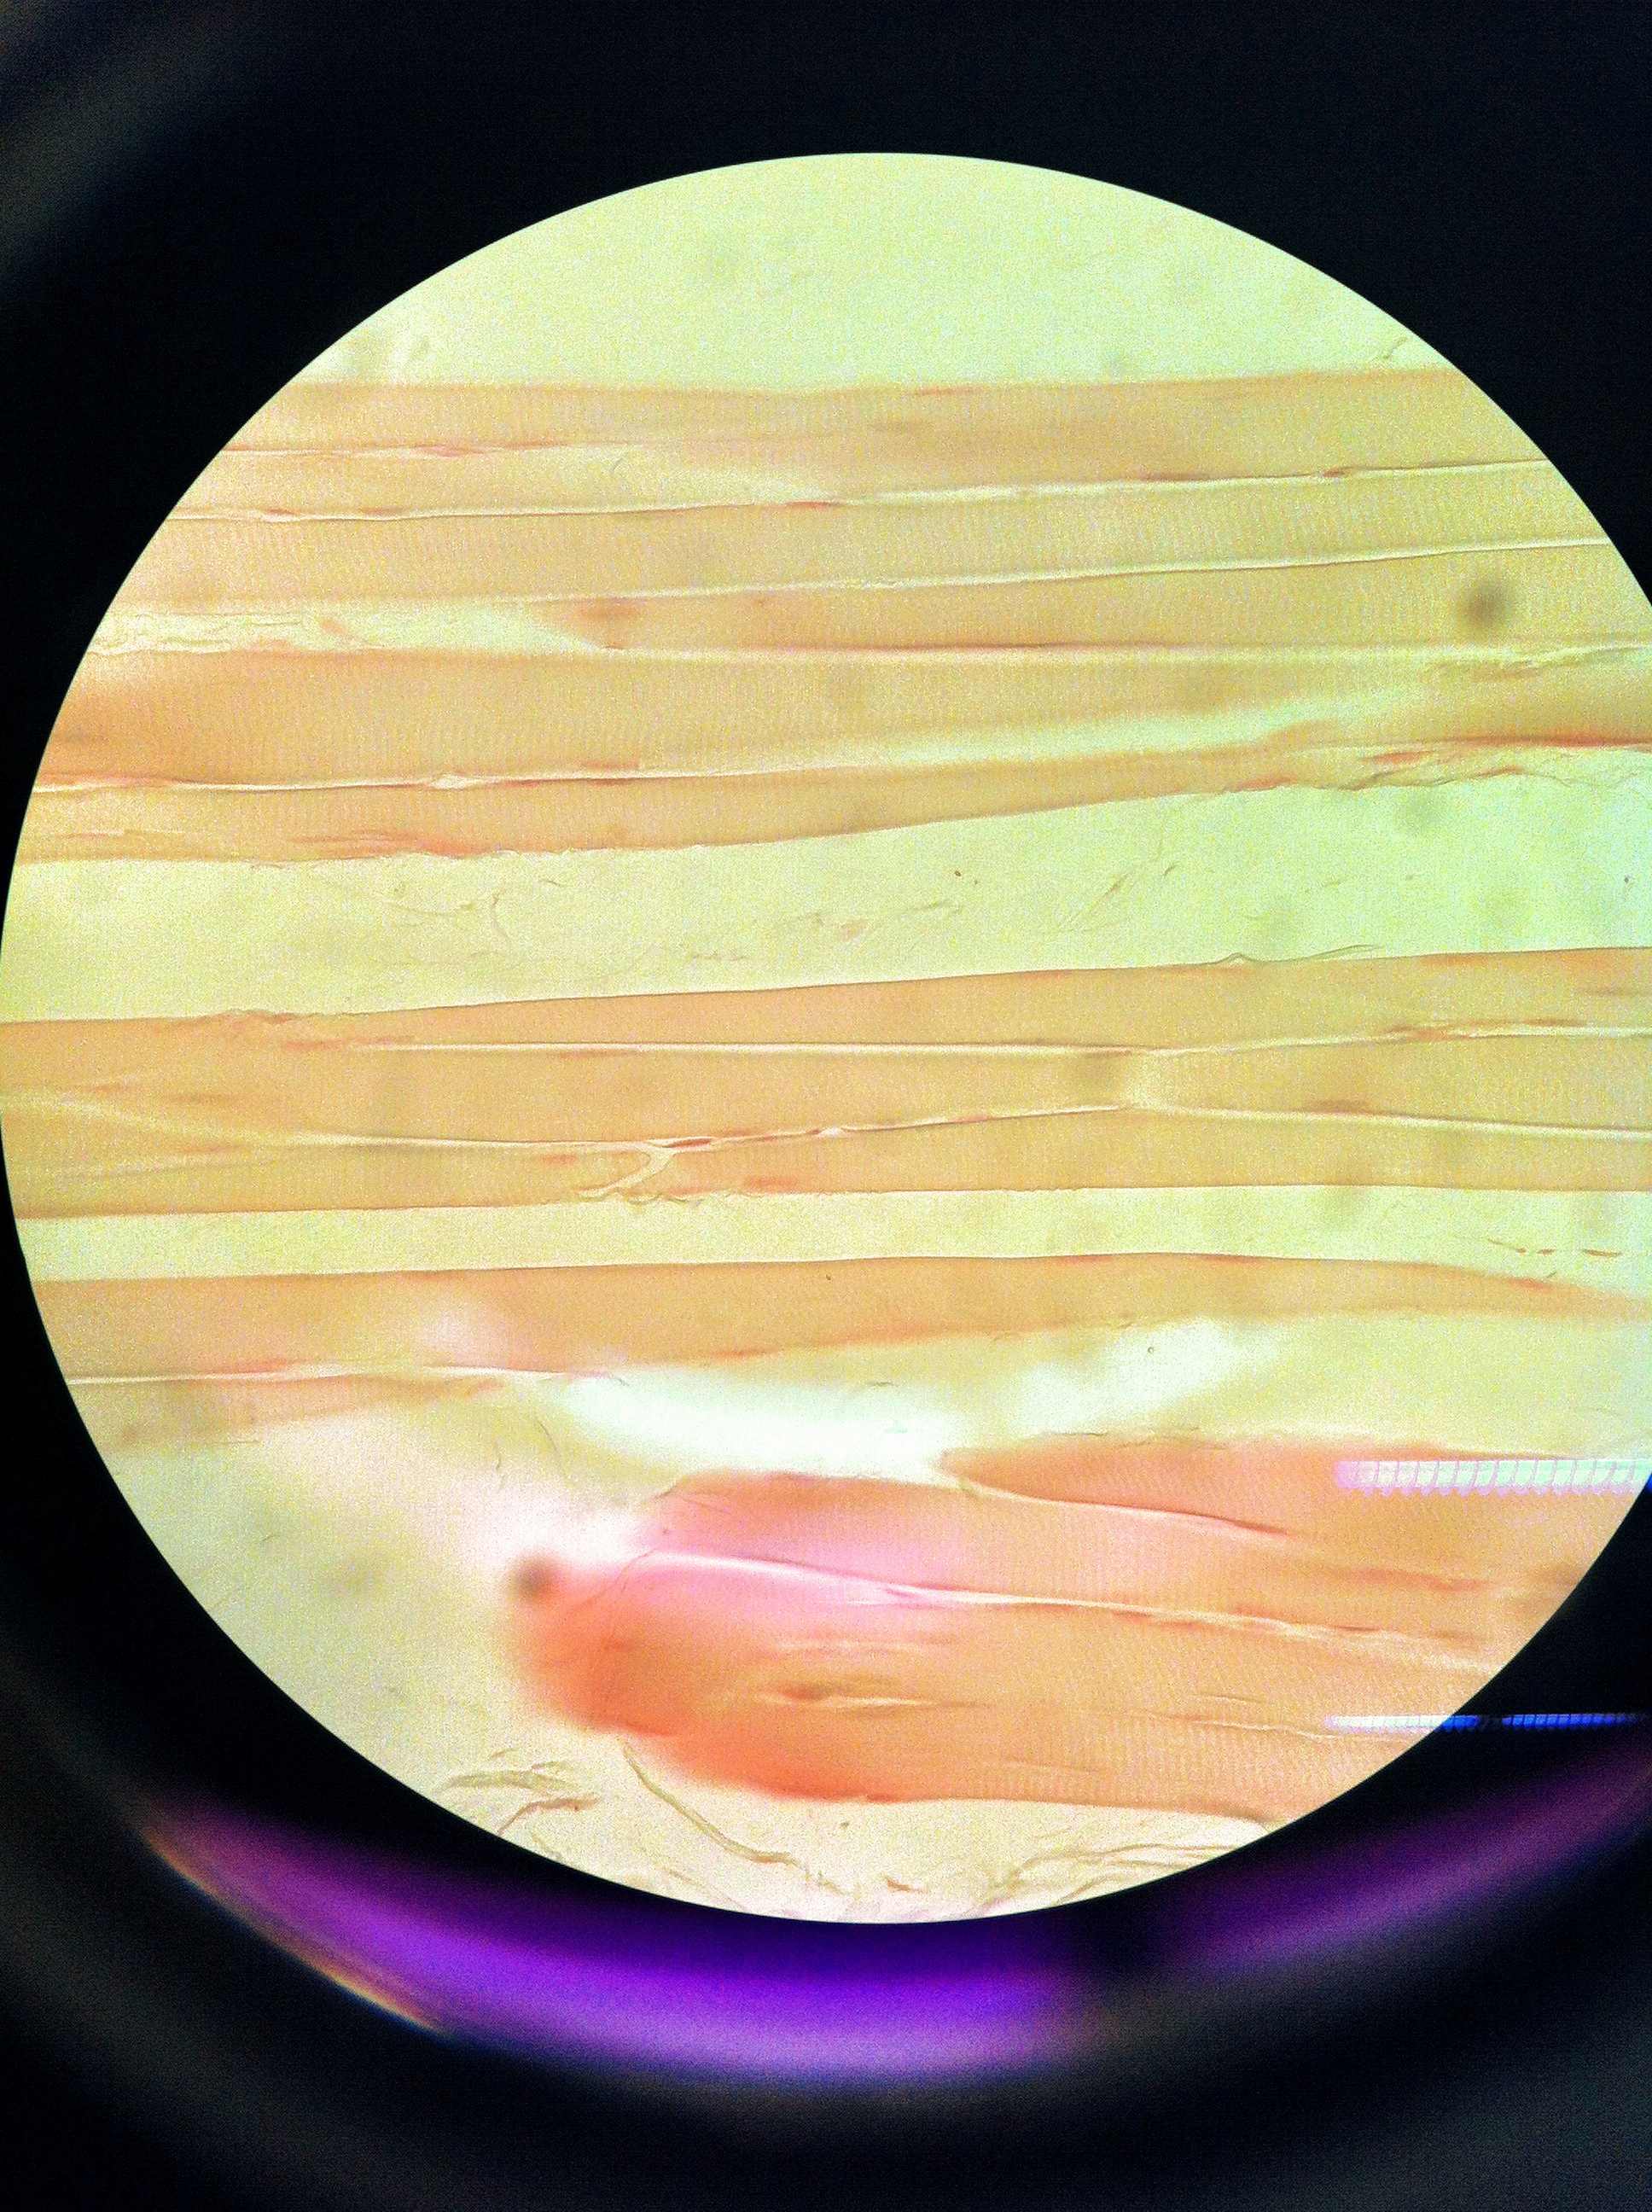 skeletal muscle (ls) Total Mag: 400X